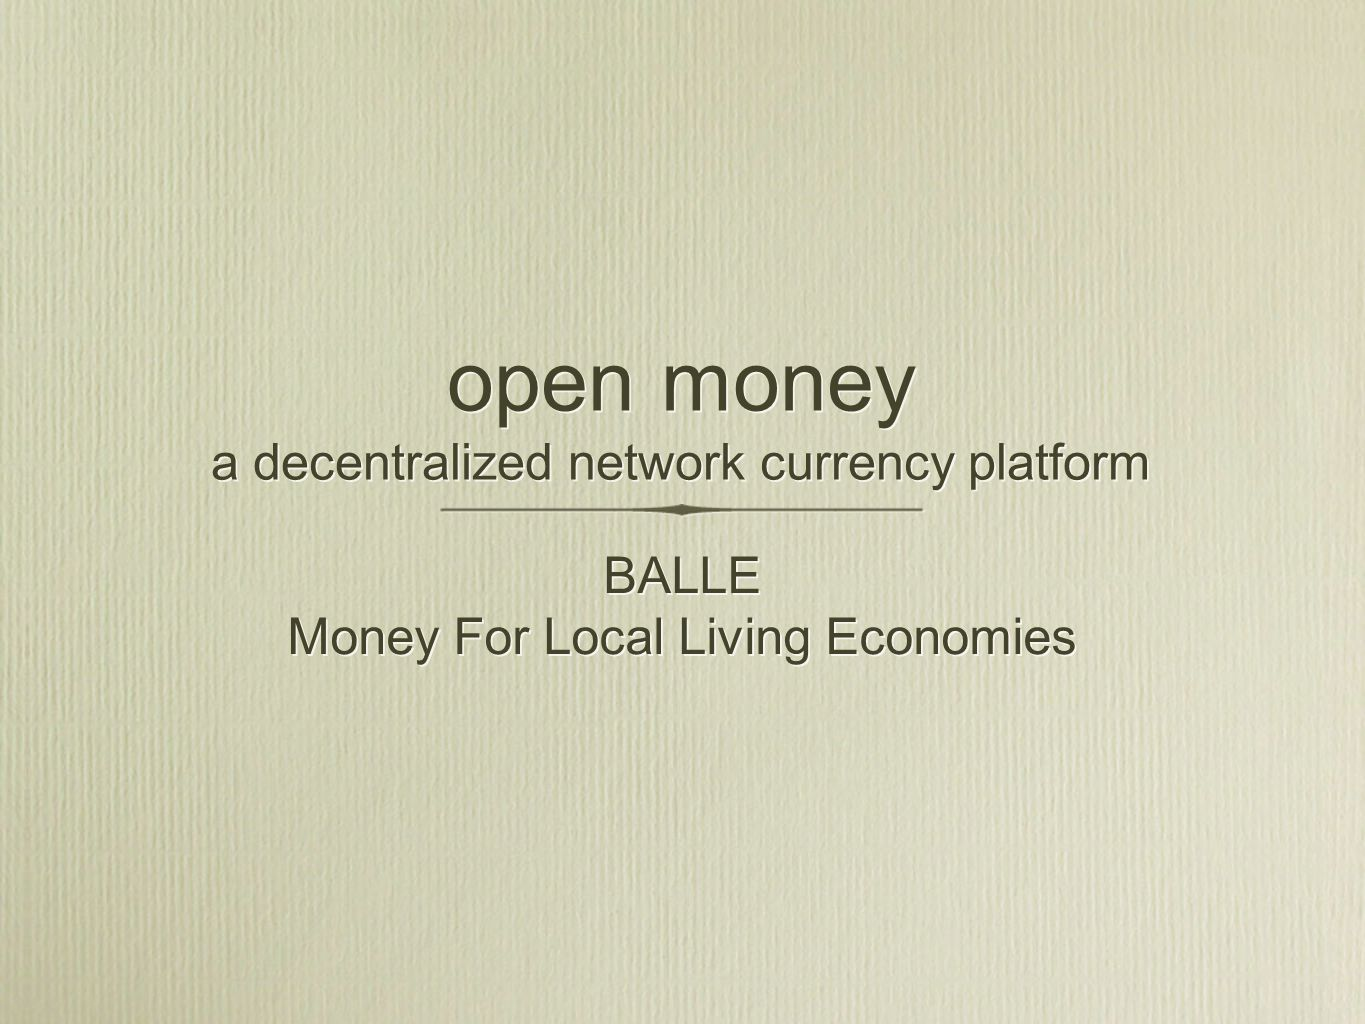 open money a decentralized network currency platform BALLE Money For Local Living Economies BALLE Money For Local Living Economies